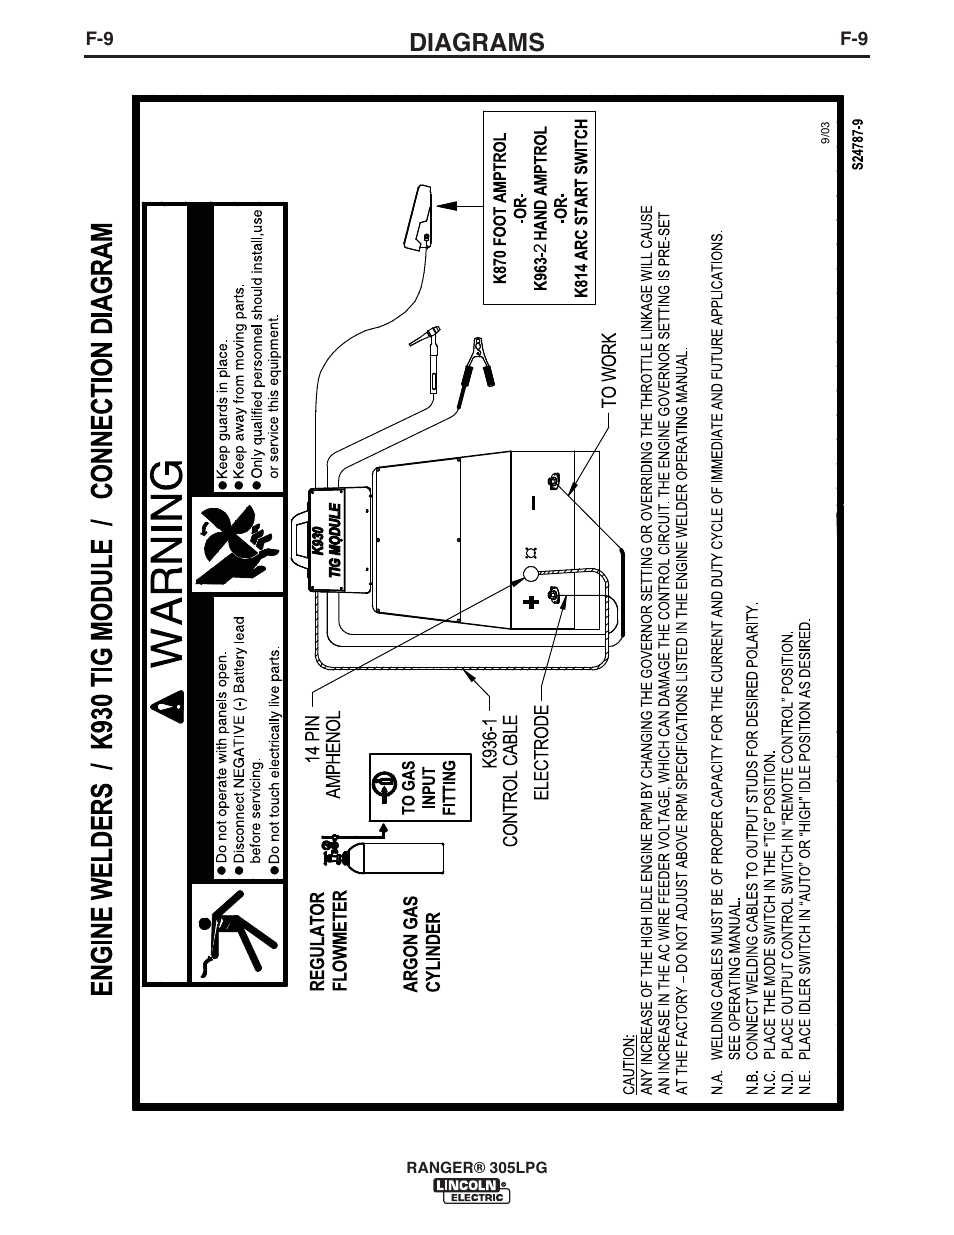 hight resolution of diagrams lincoln electric im10043 ranger 305 lpg user manual page 45 52